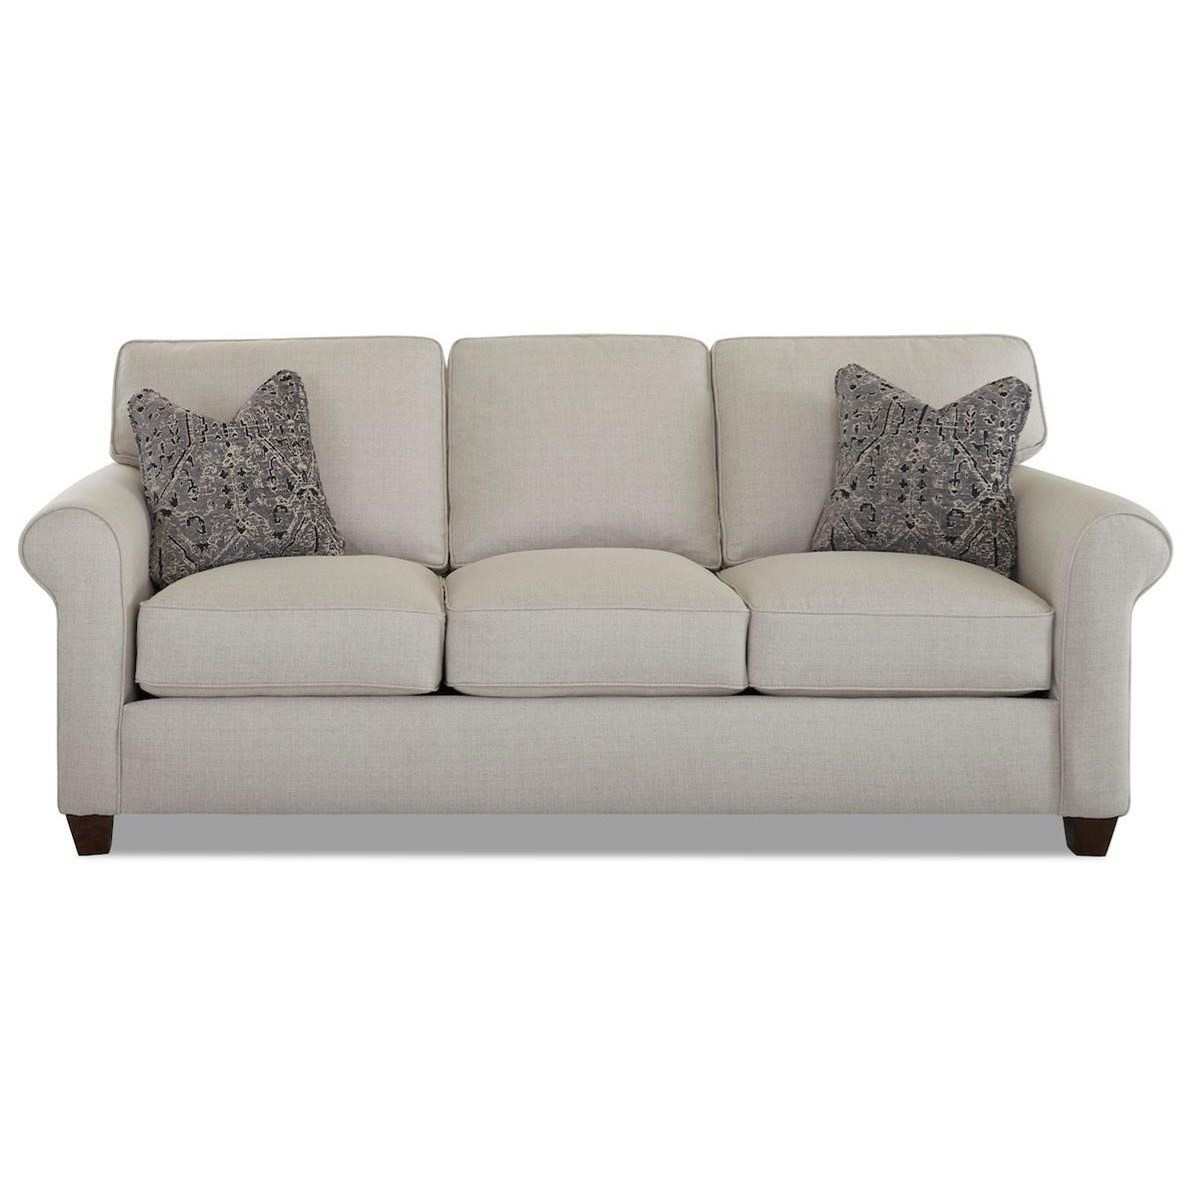 Lillington Distinctions  Extra Large Queen Dreamquest Sleeper Sofa by Klaussner at Northeast Factory Direct